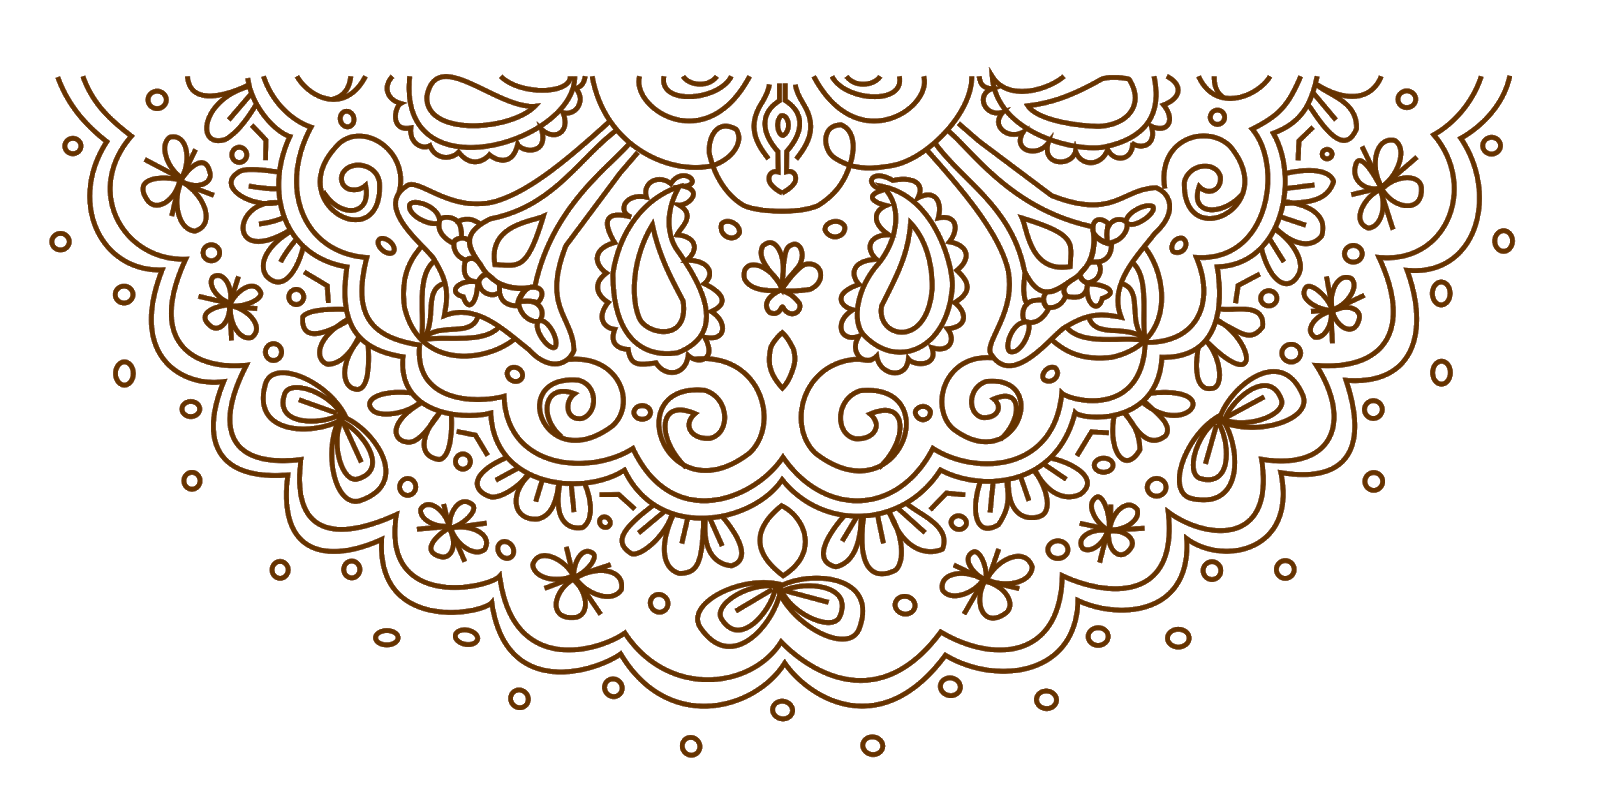 Rangoli Outline Png Free Rangoli Outline Png Transparent Images 108844 Pngio